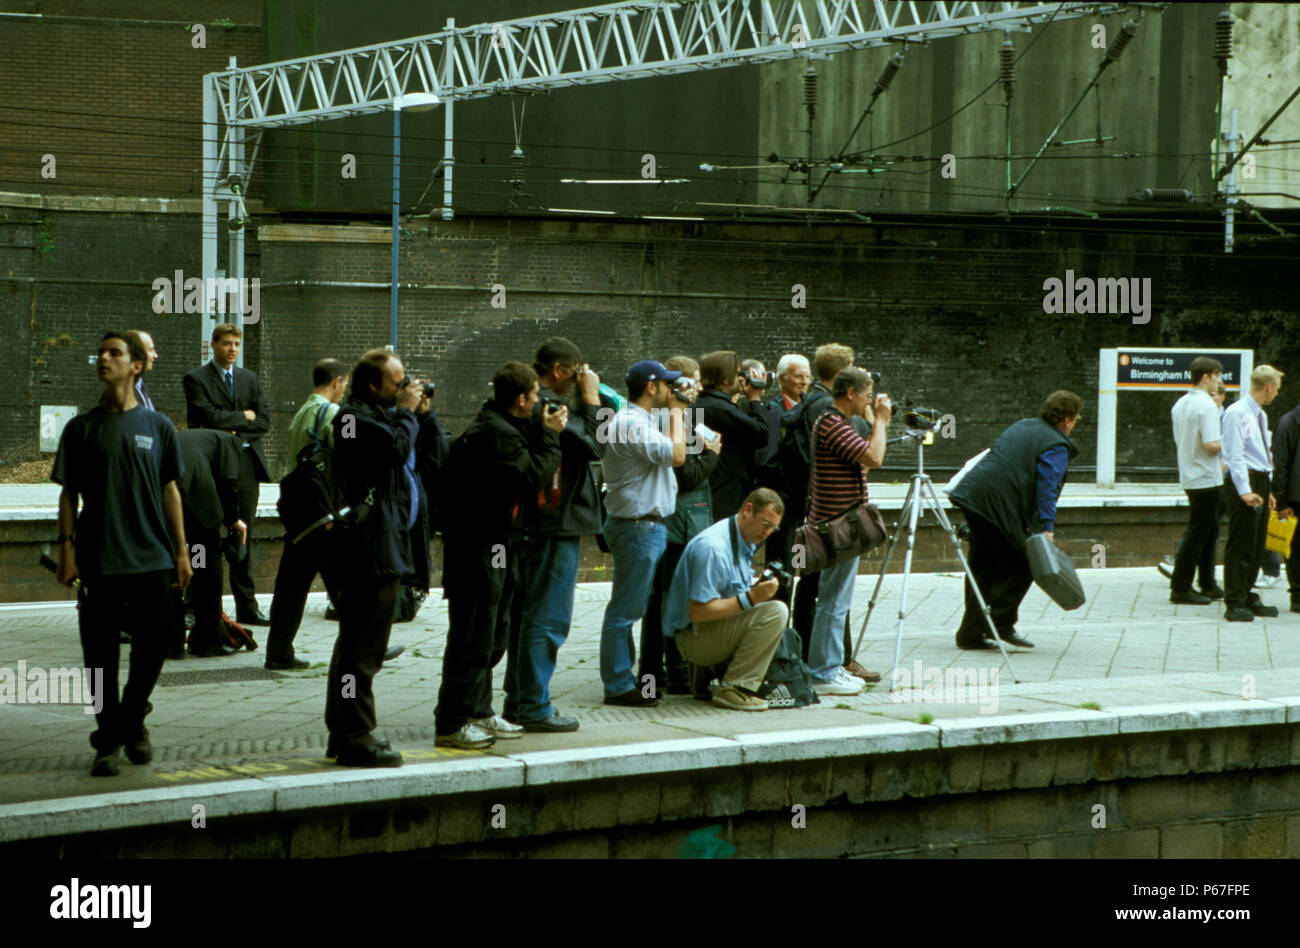 Enthusiasts and photographers at the platform end at Birmingham New Street station. 19th August 2002 - Stock Image